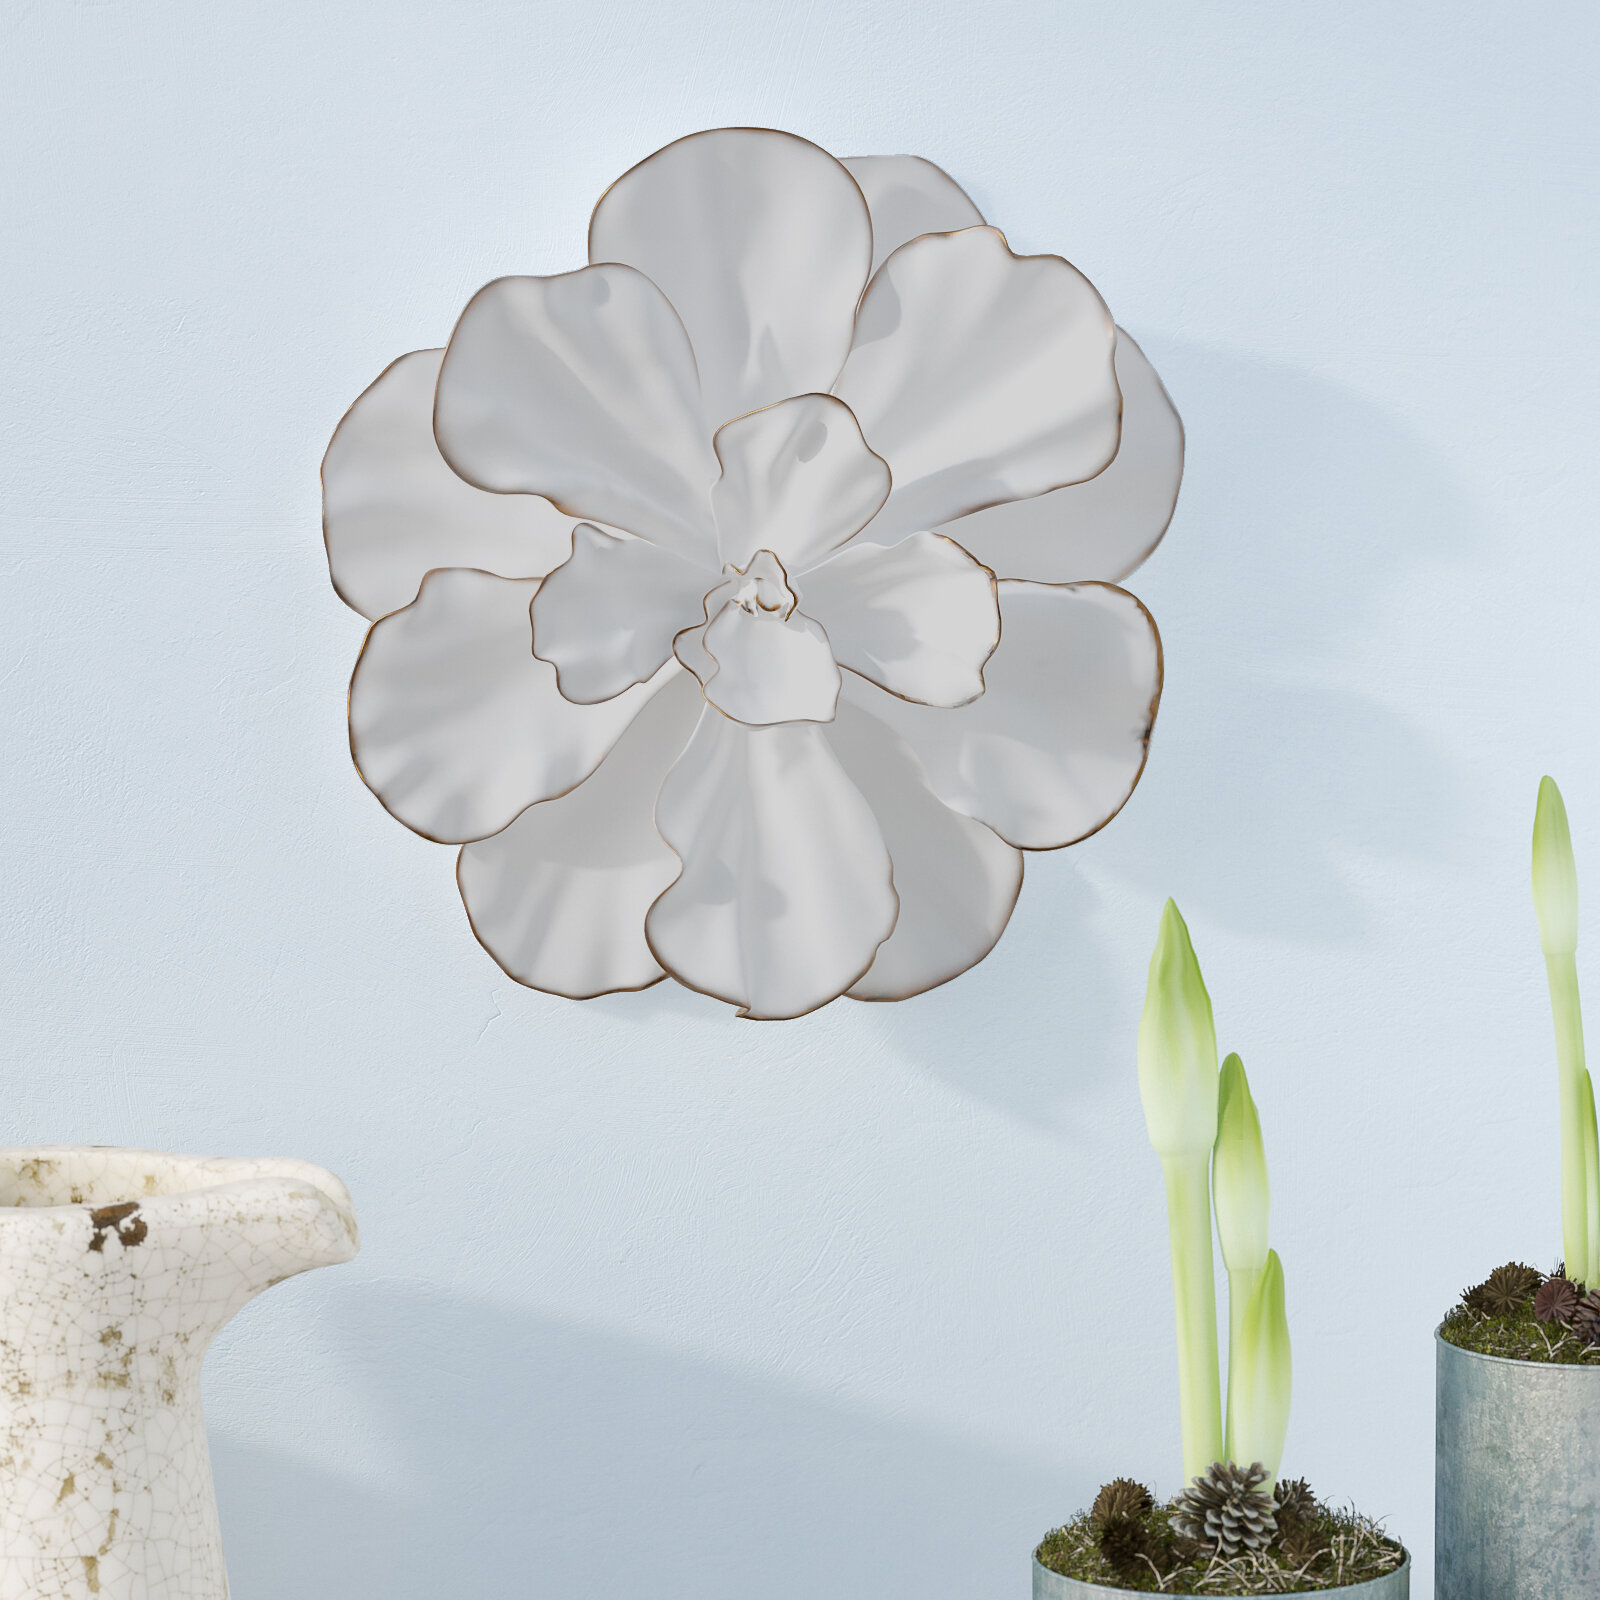 ordinary 3d Flower Wall Decor Part - 1: White-Gold Flower Wall Décor